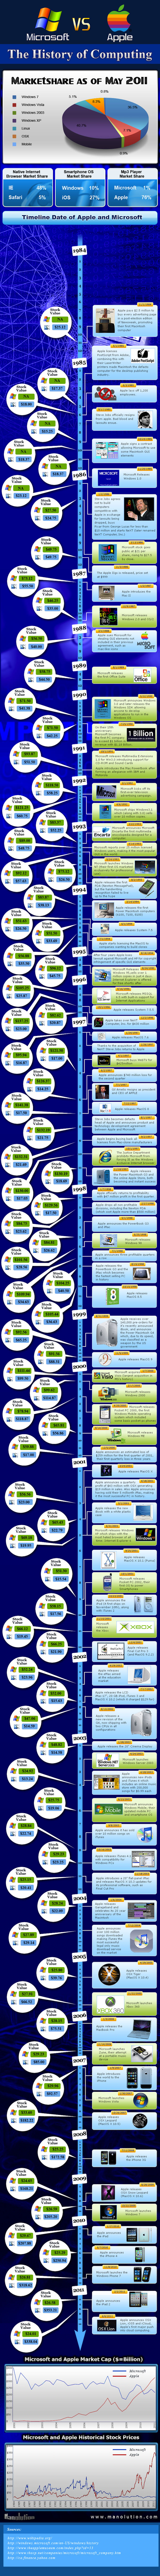 history of computing full copy The History of Computing [Infographic]